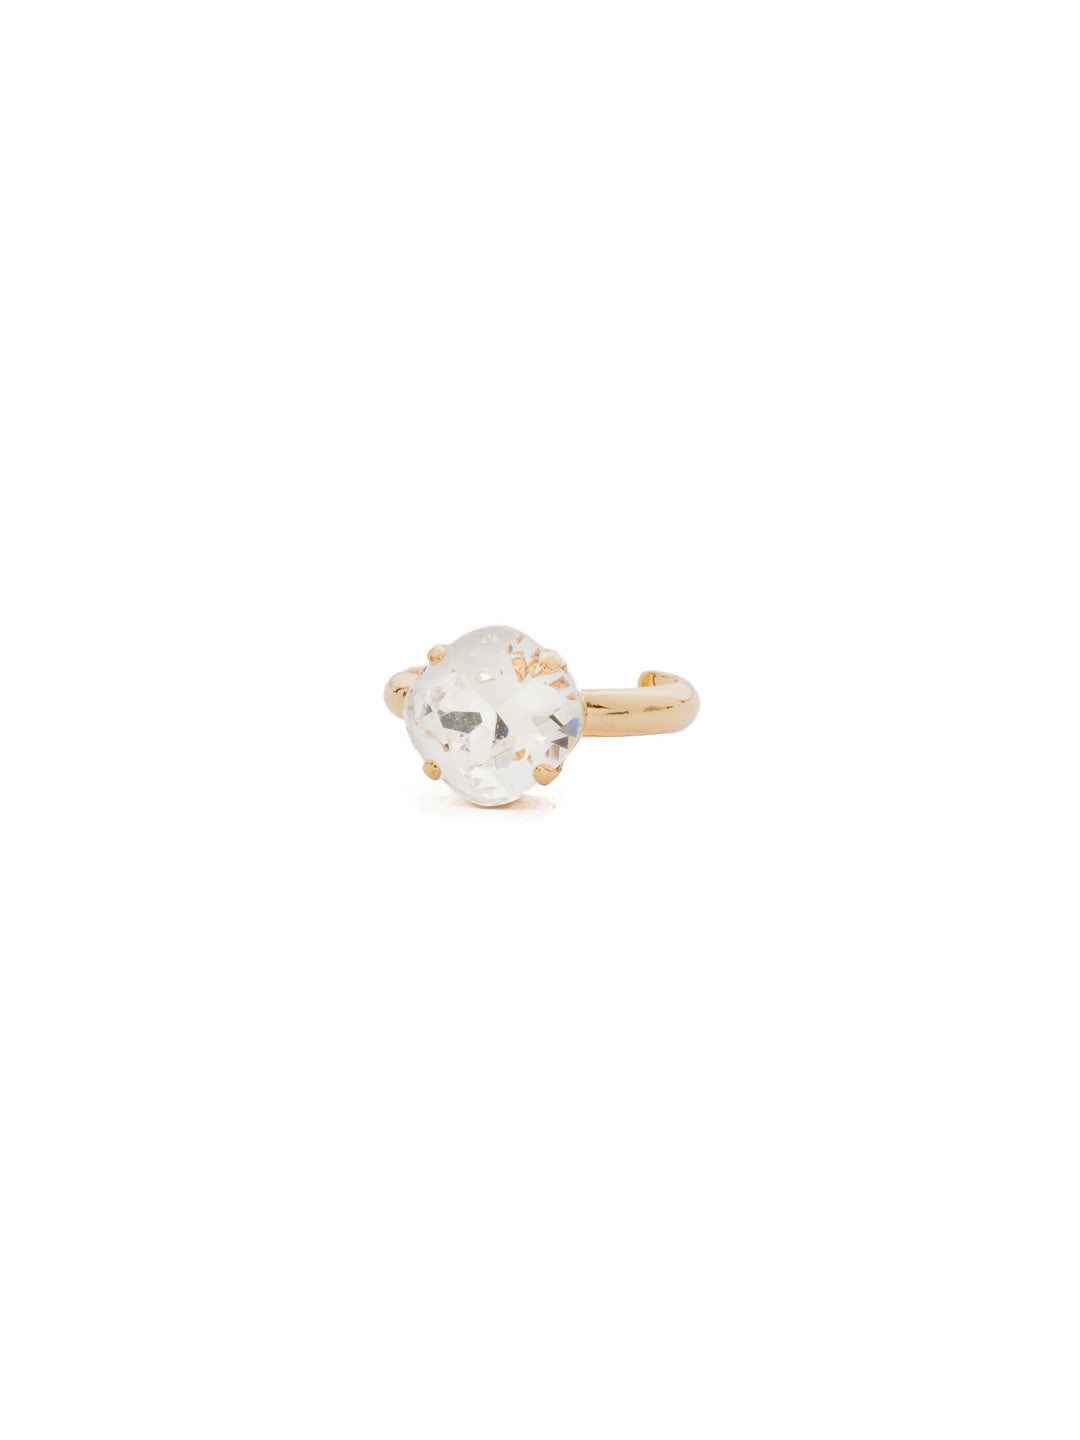 One and Only Adjustable Ring - RDN30BGCRY